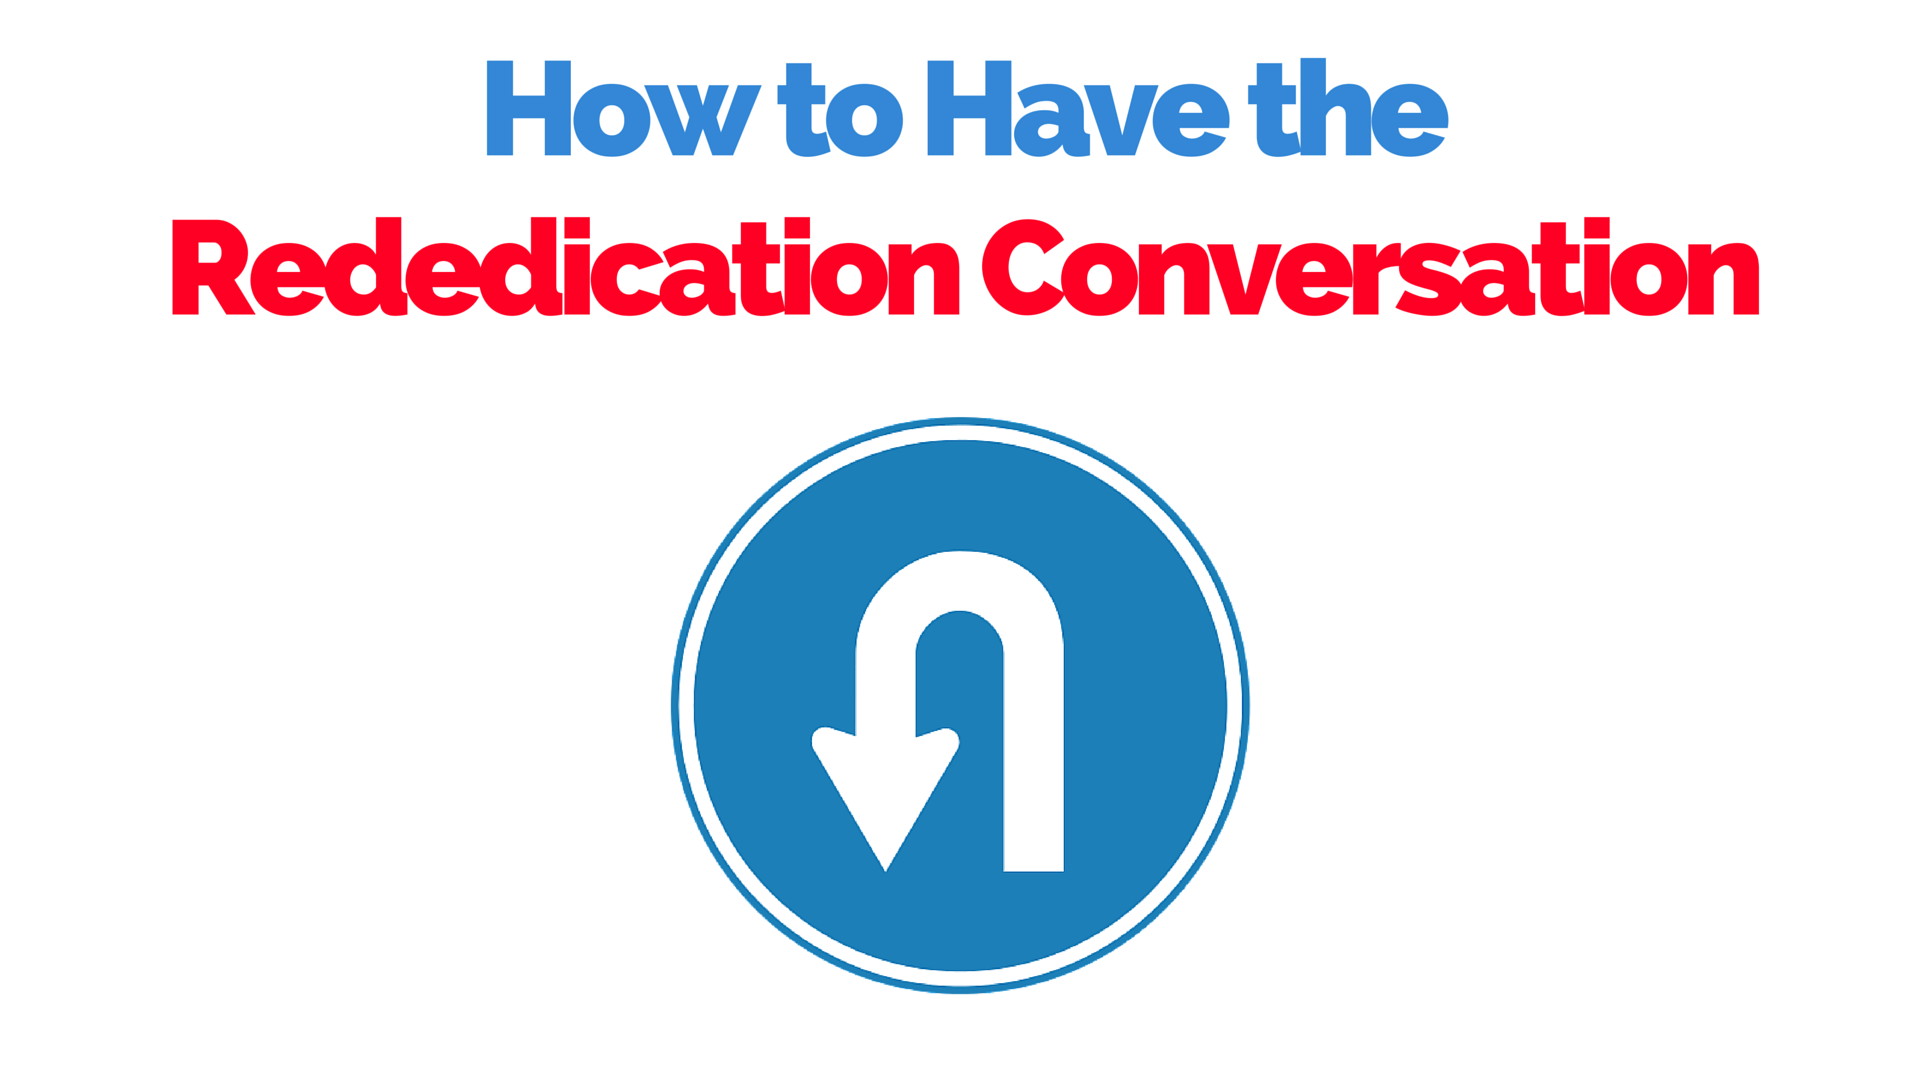 how to have the rededication conversation